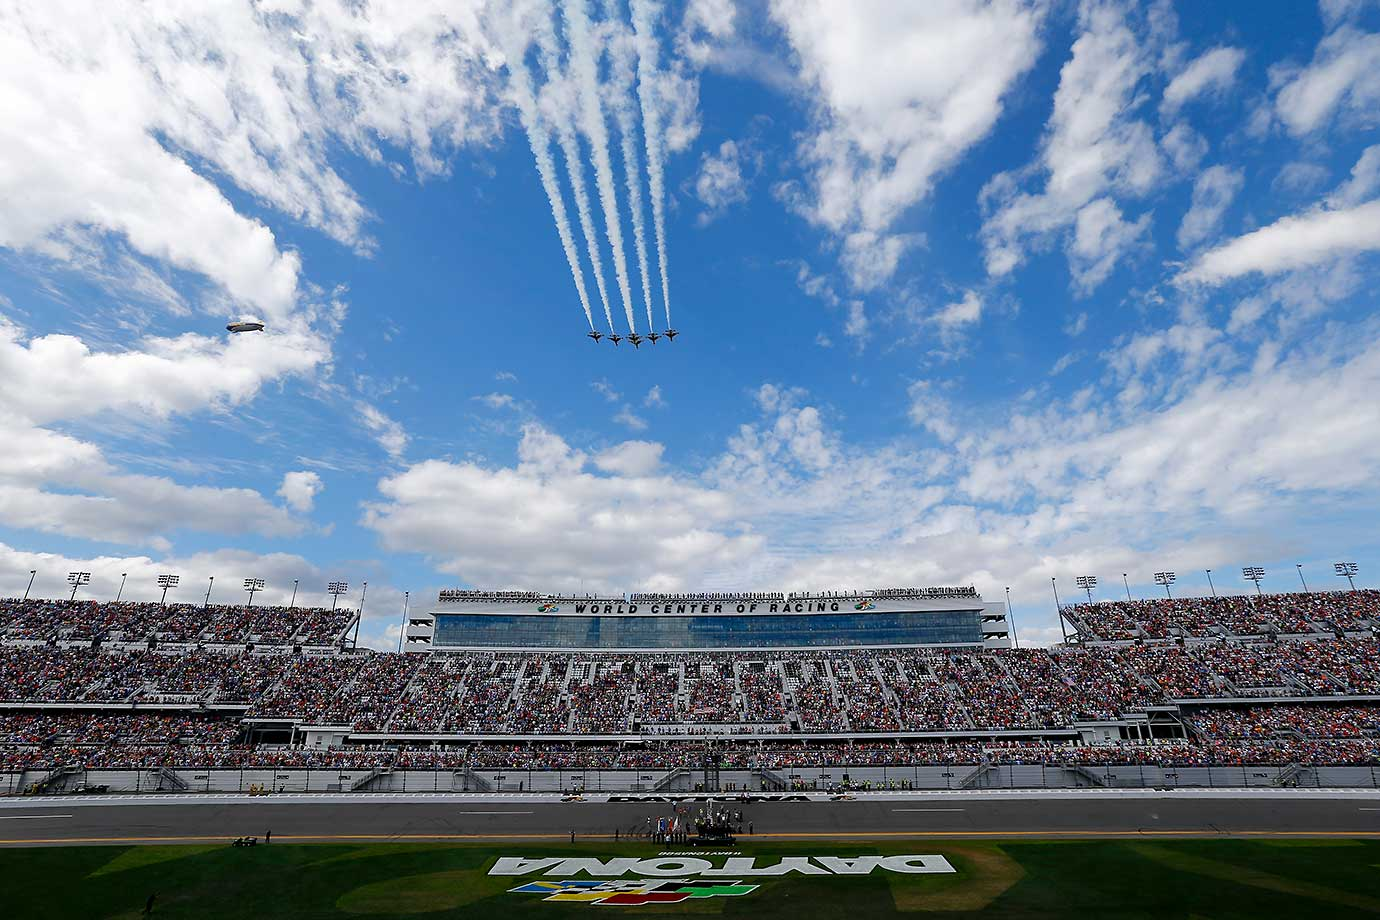 A general view of the speedway during the flyover prior to the Daytona 500.